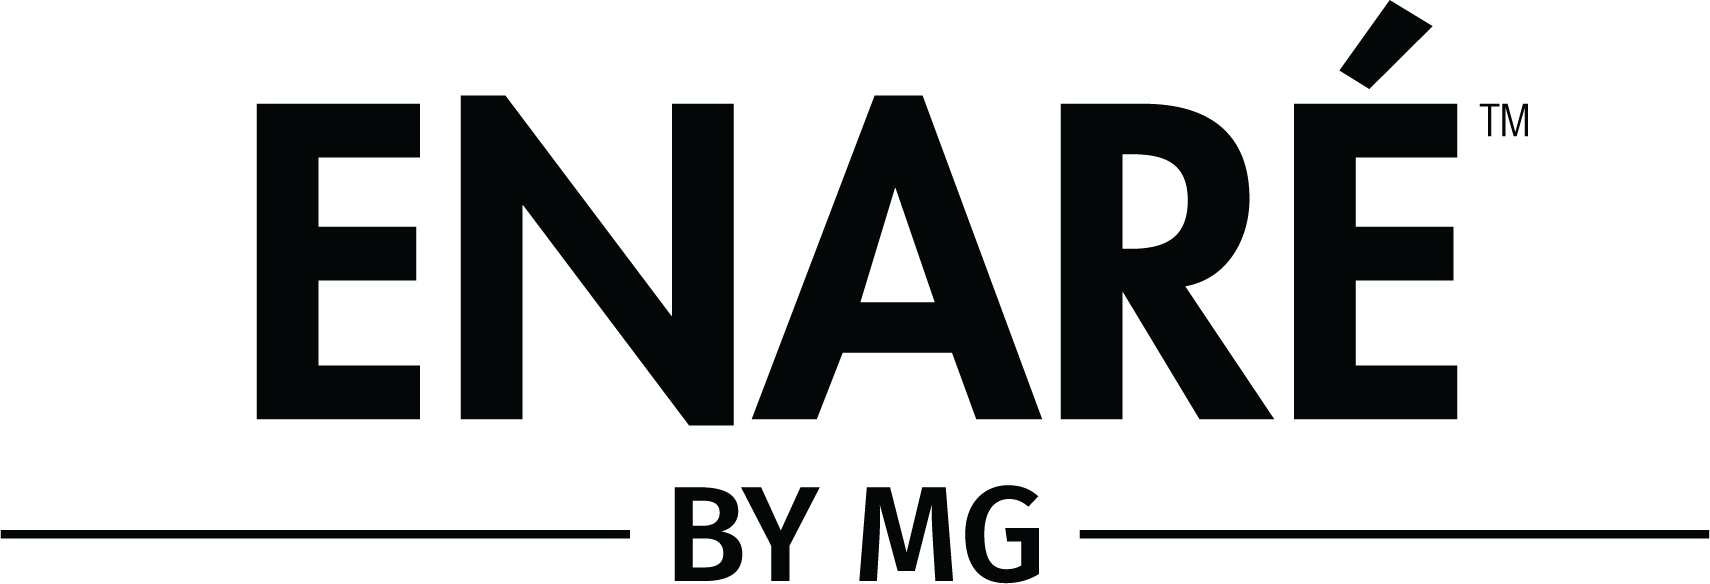 Enaré by MG